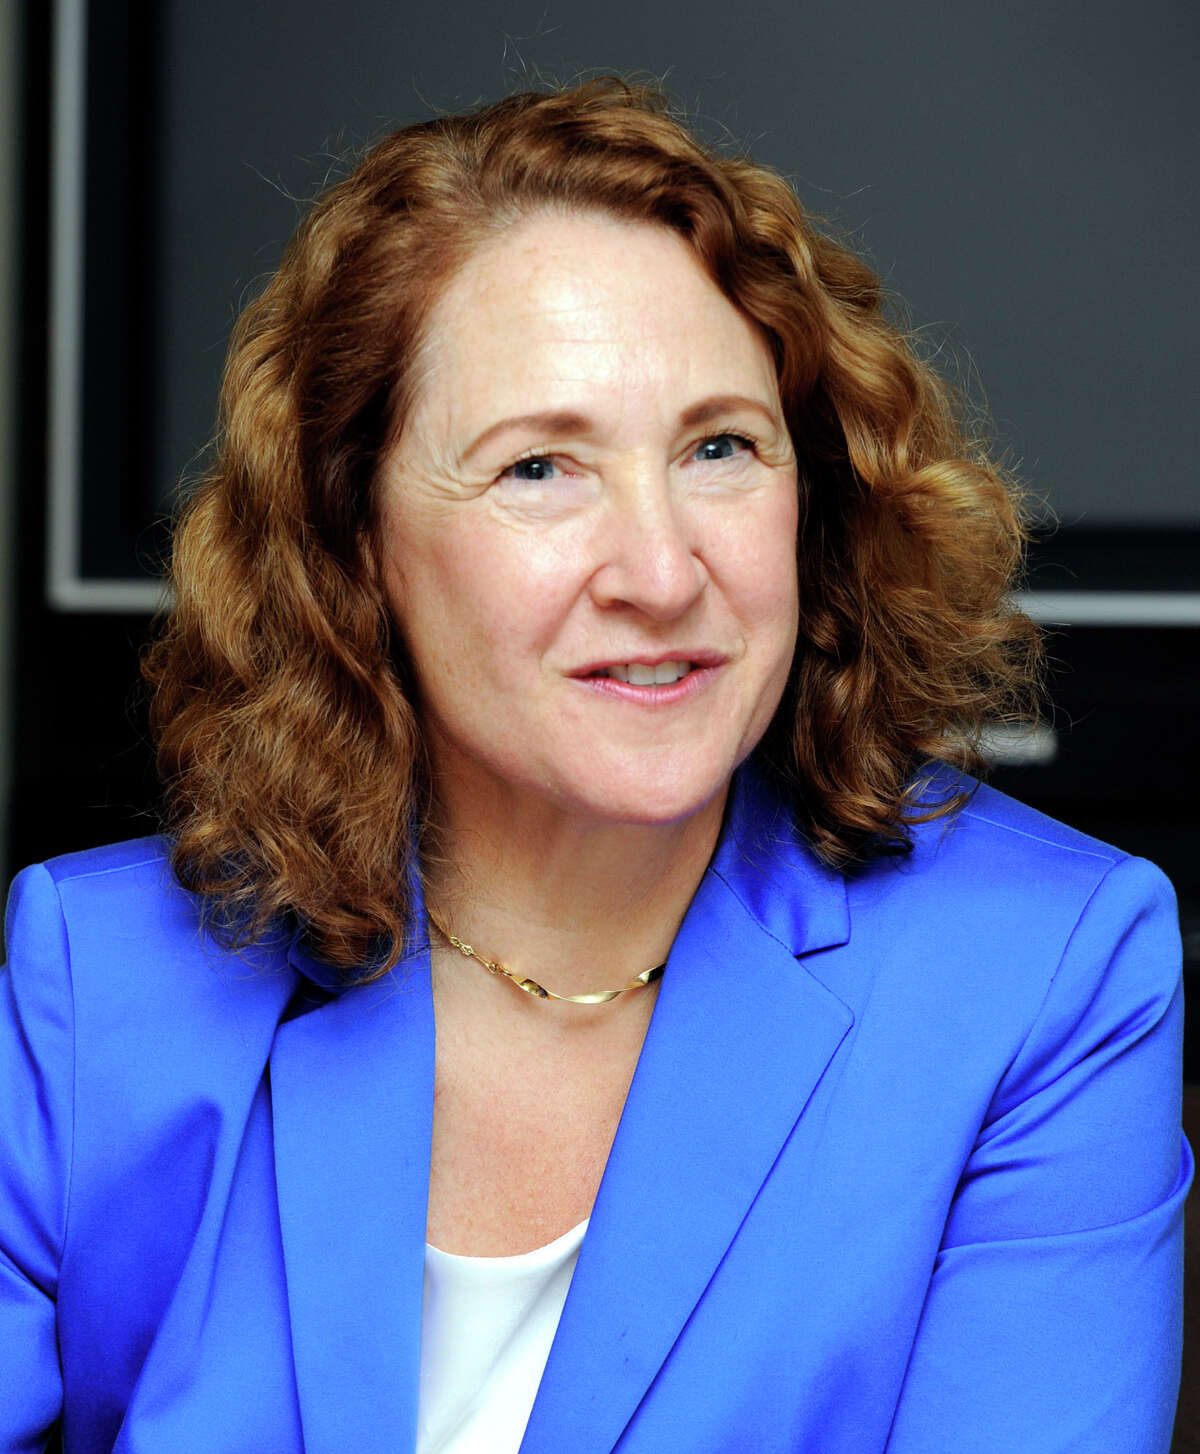 Elizabeth Esty, Democratic candidate for Congress in the 5th District